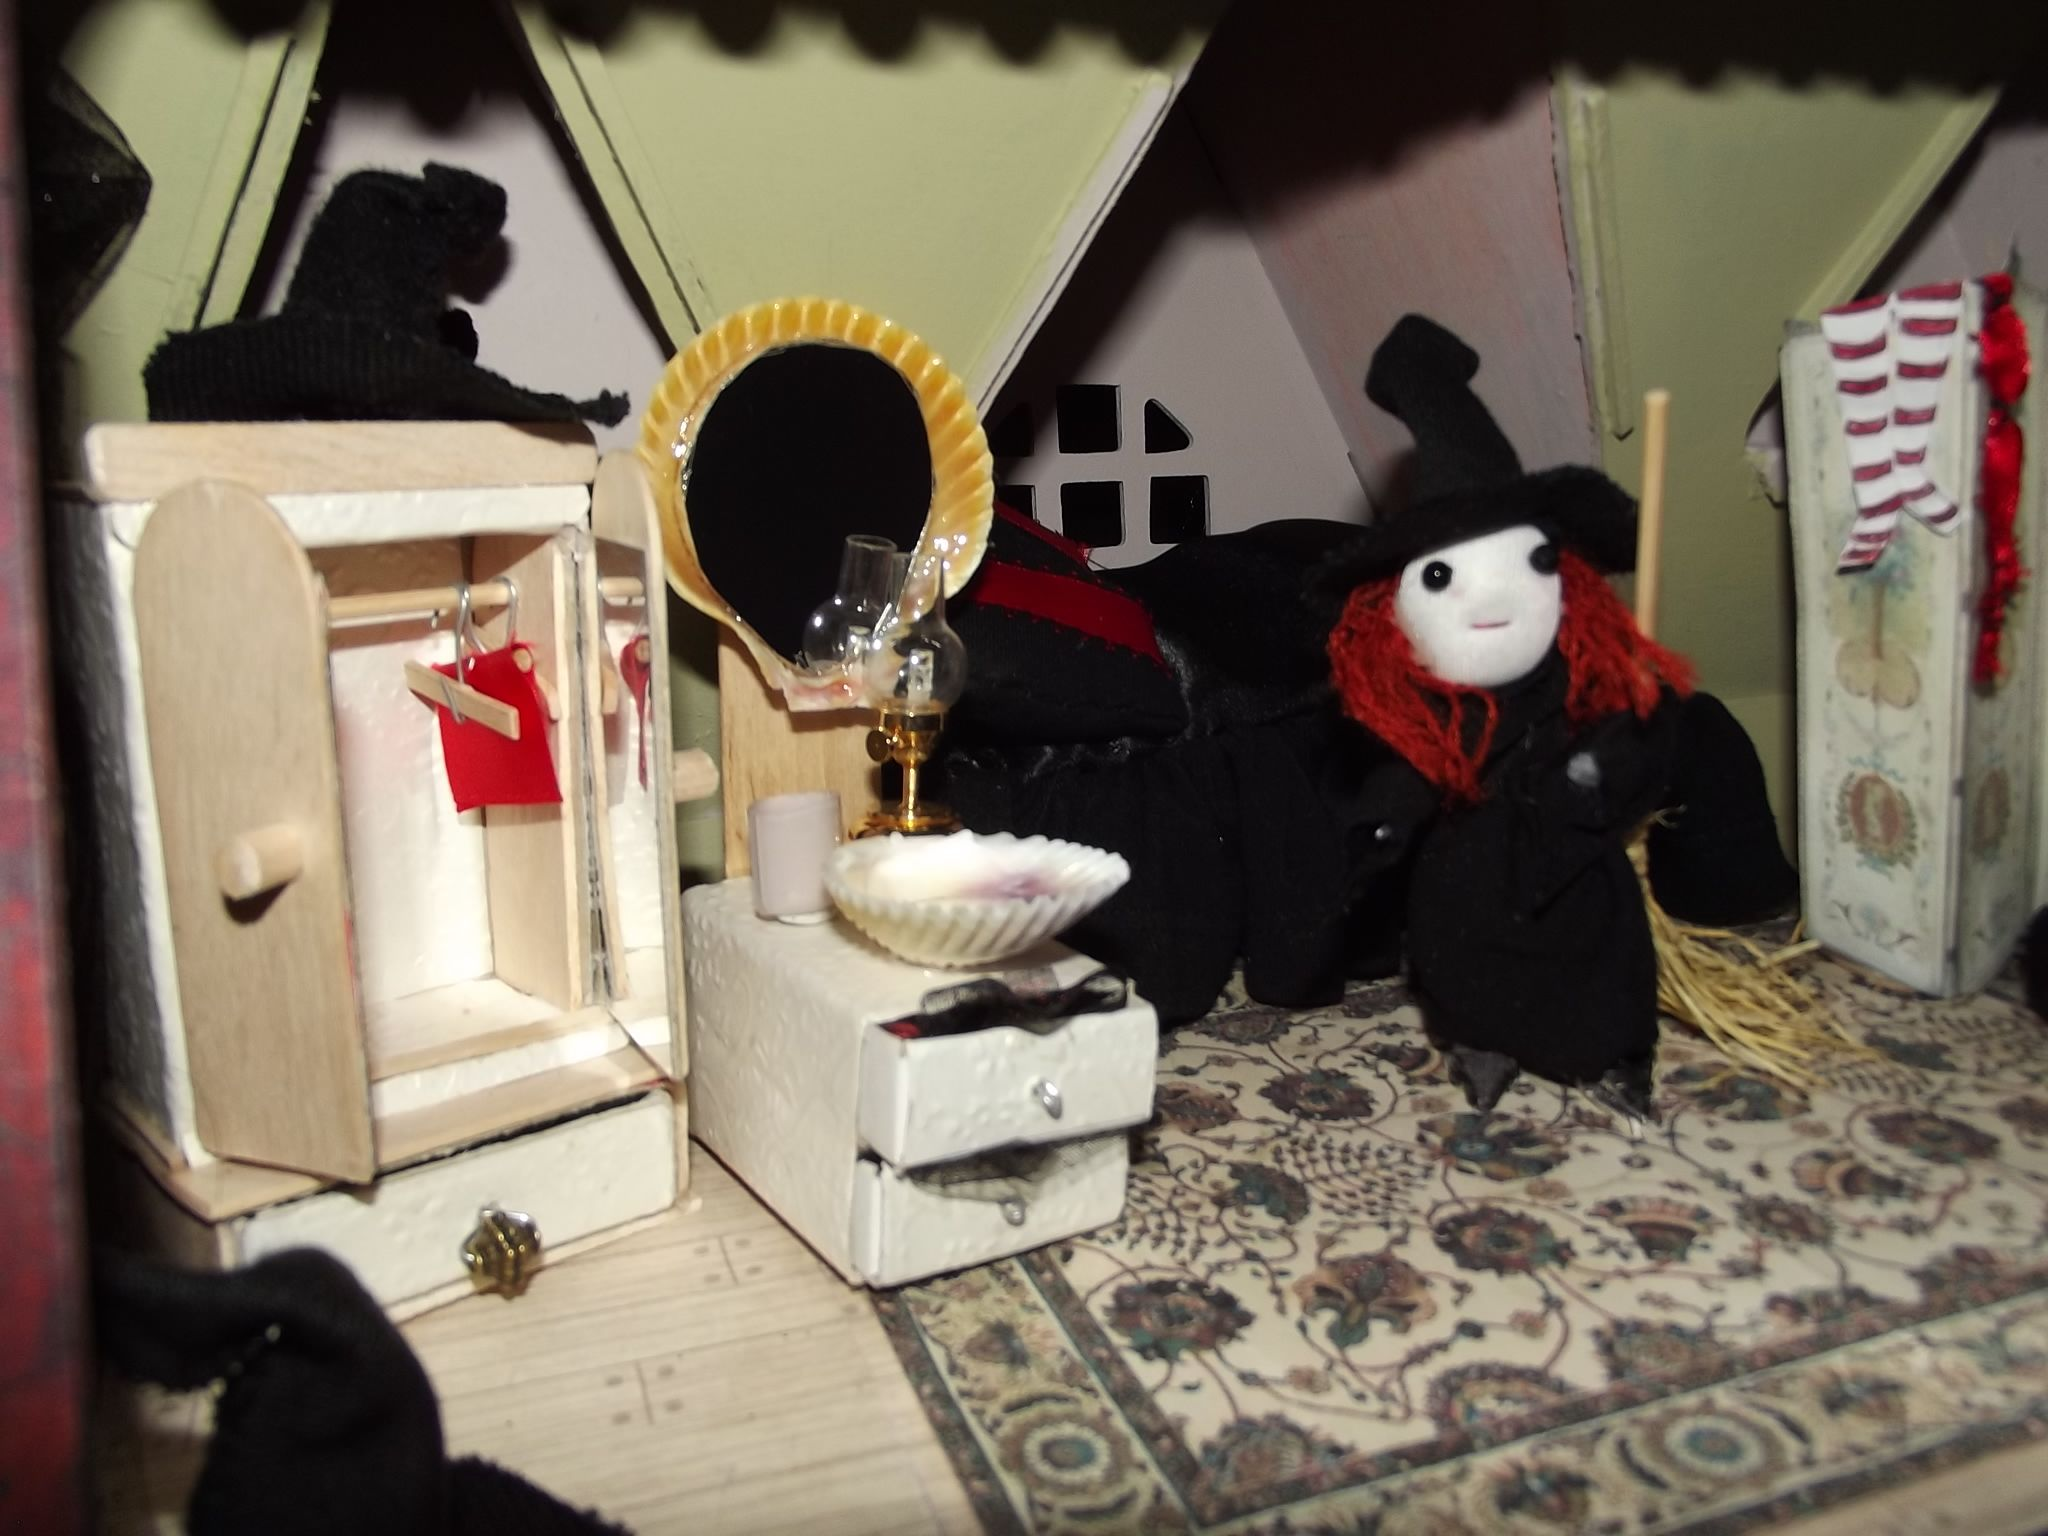 Witch's upstairs bedroom